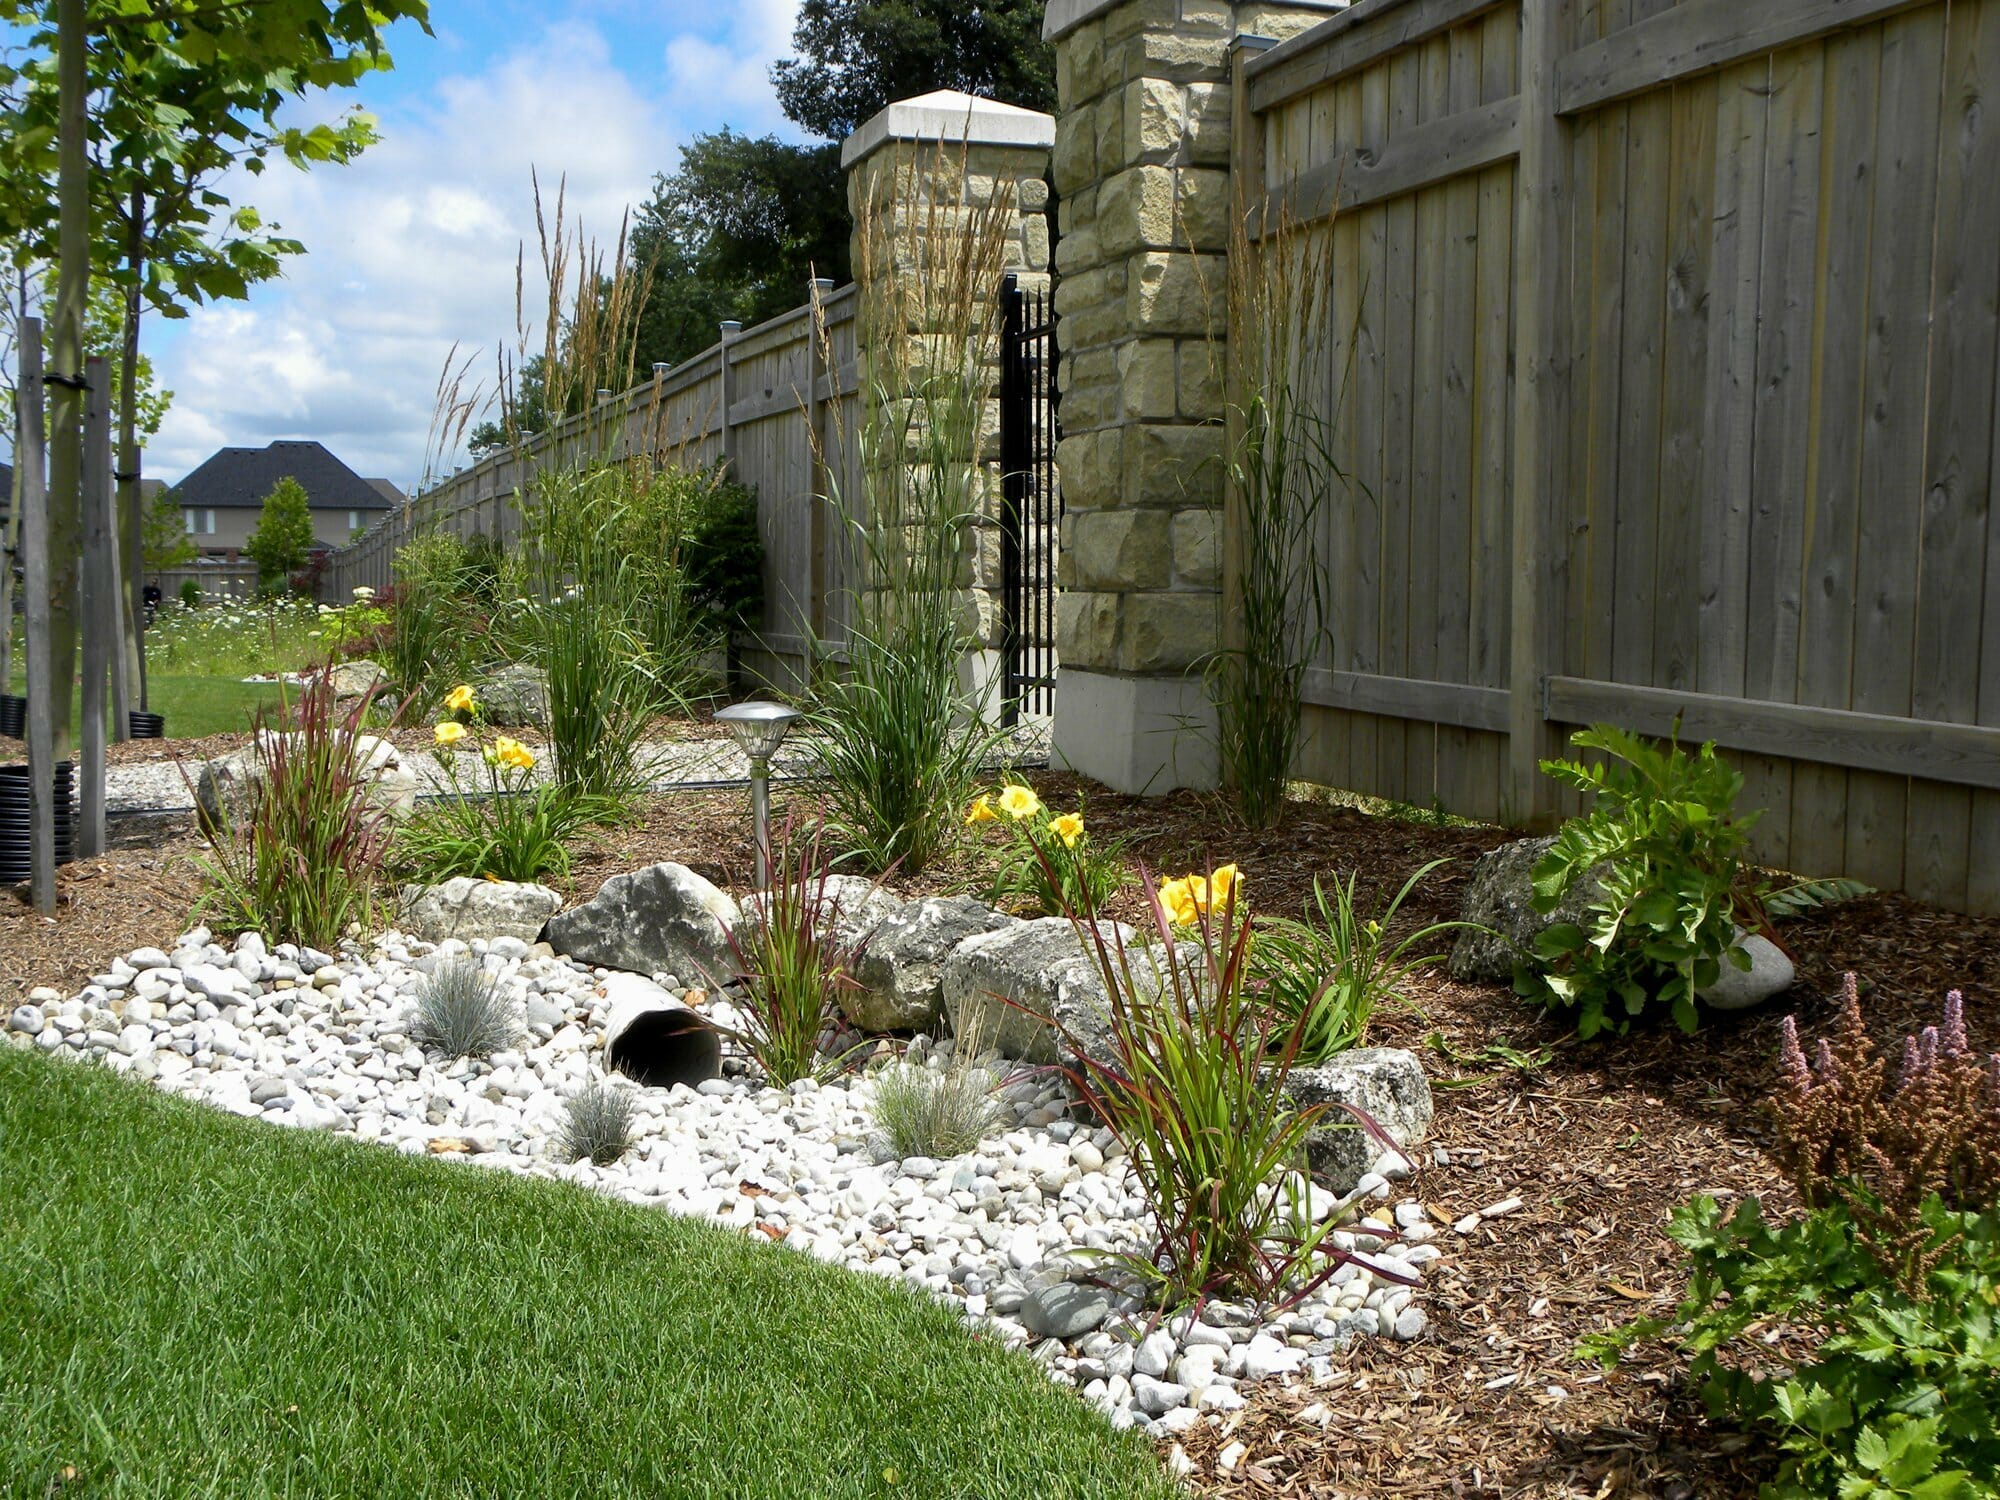 Riverstone Garden - London, Ontario Landscaping & Custom Landscape Design